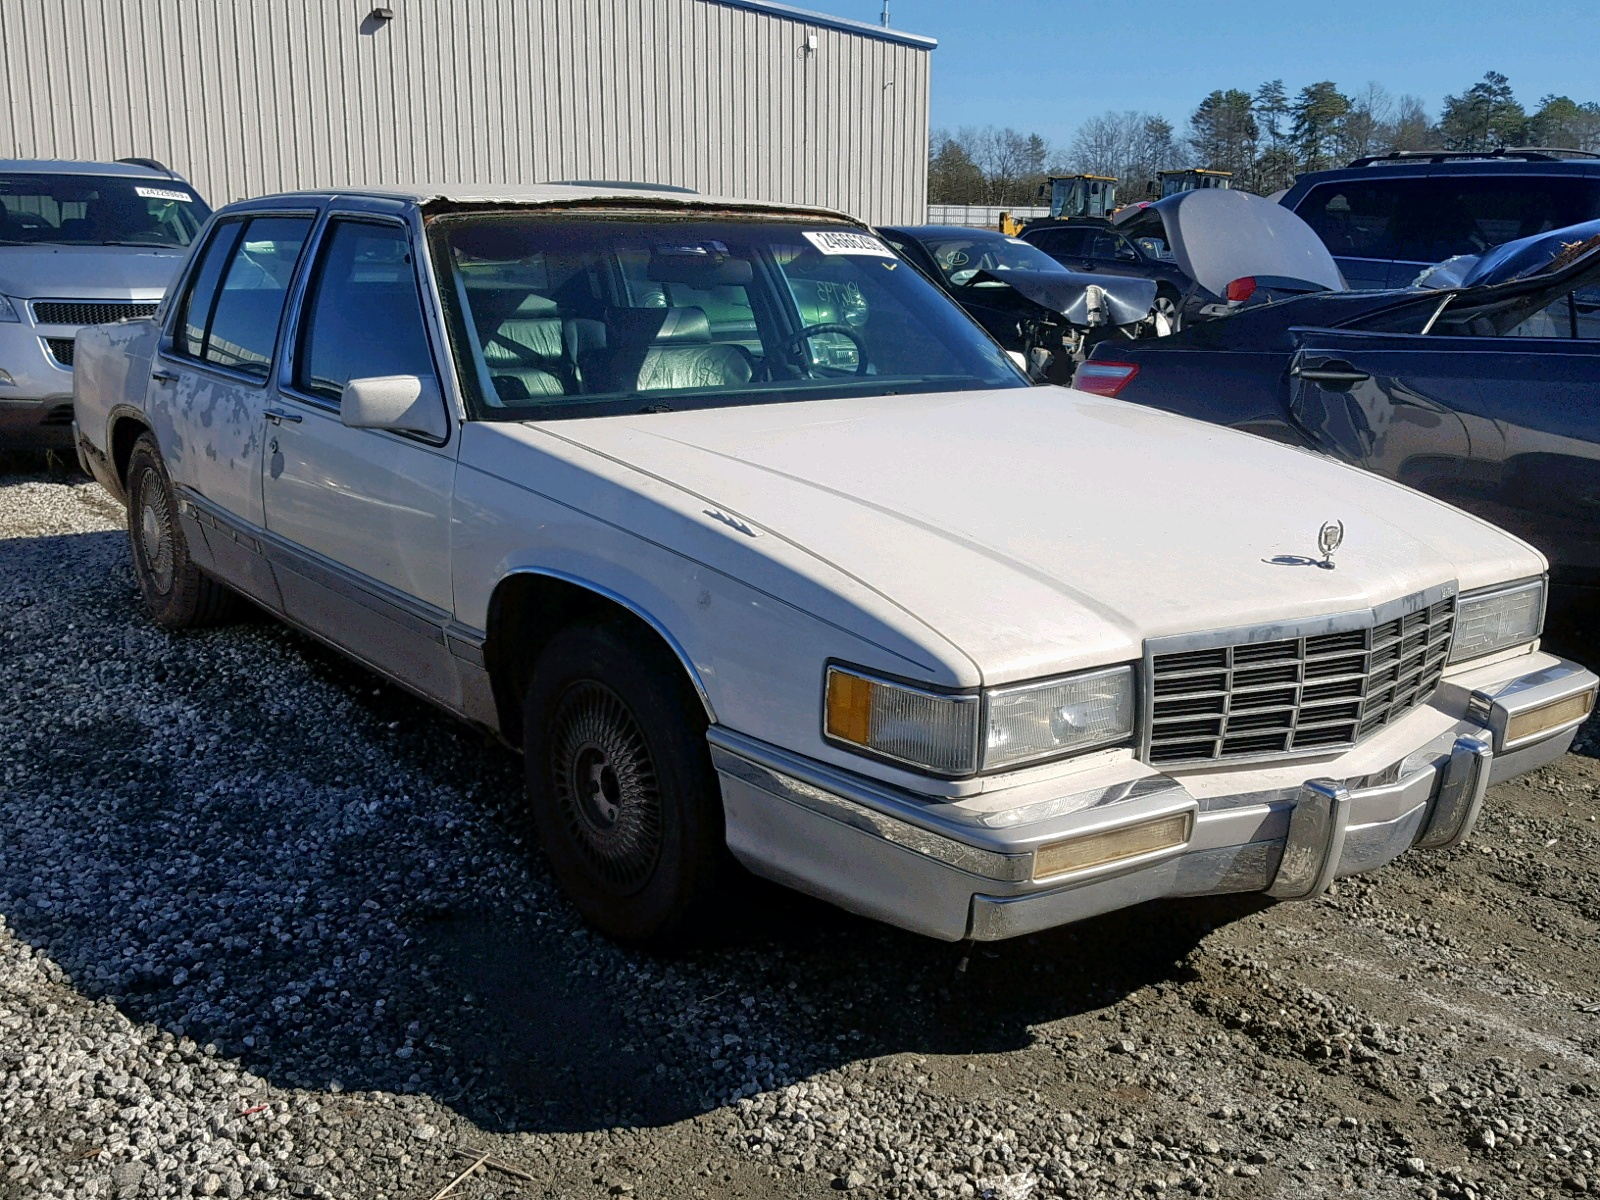 Salvage 1993 Cadillac 60 SPECIAL for sale